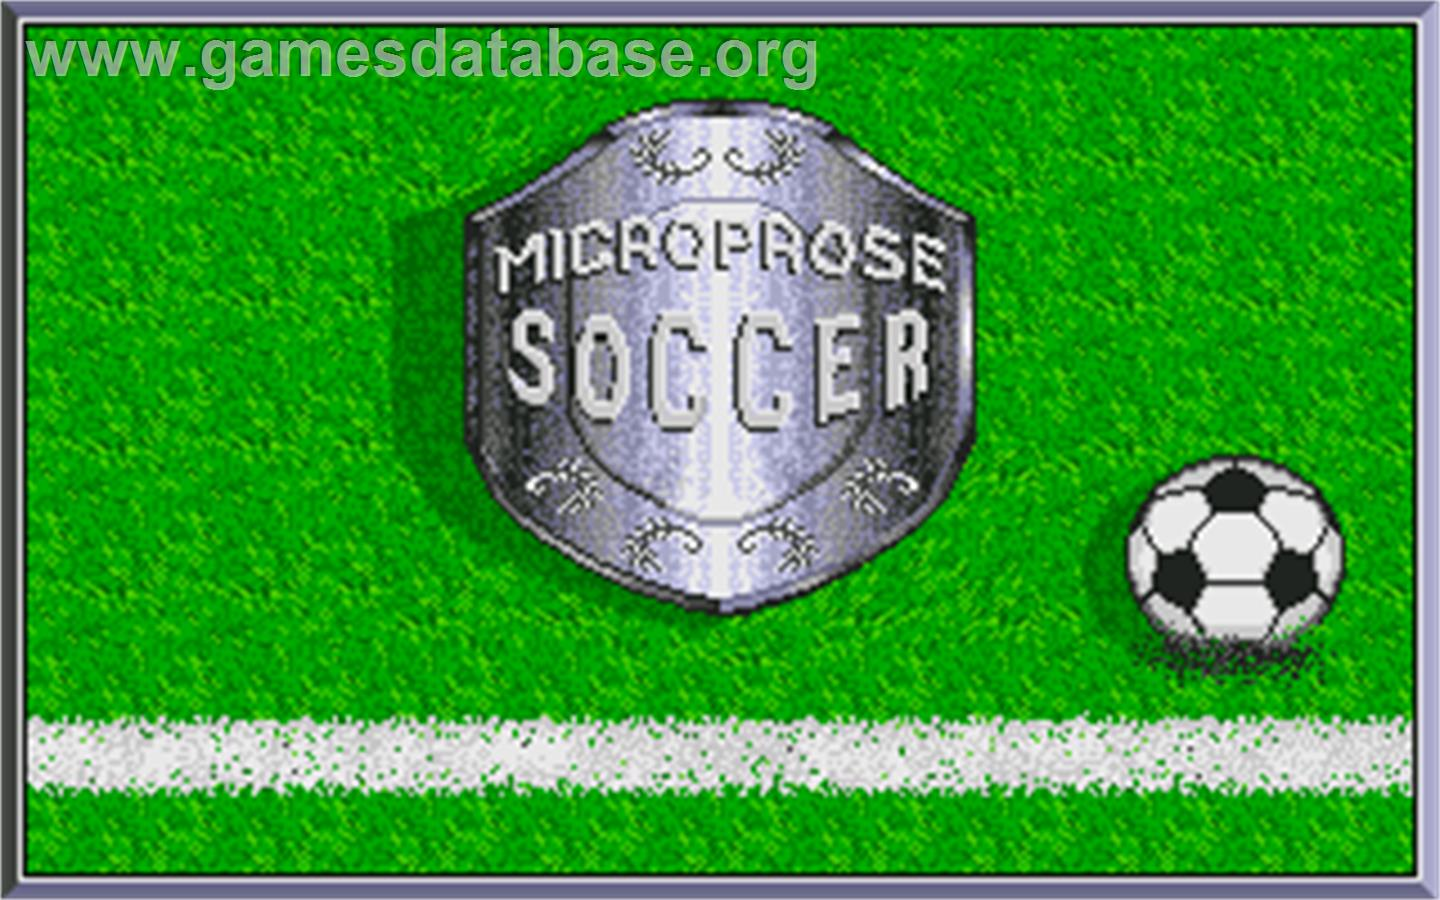 Microprose Pro Soccer - Atari ST - Artwork - Title Screen